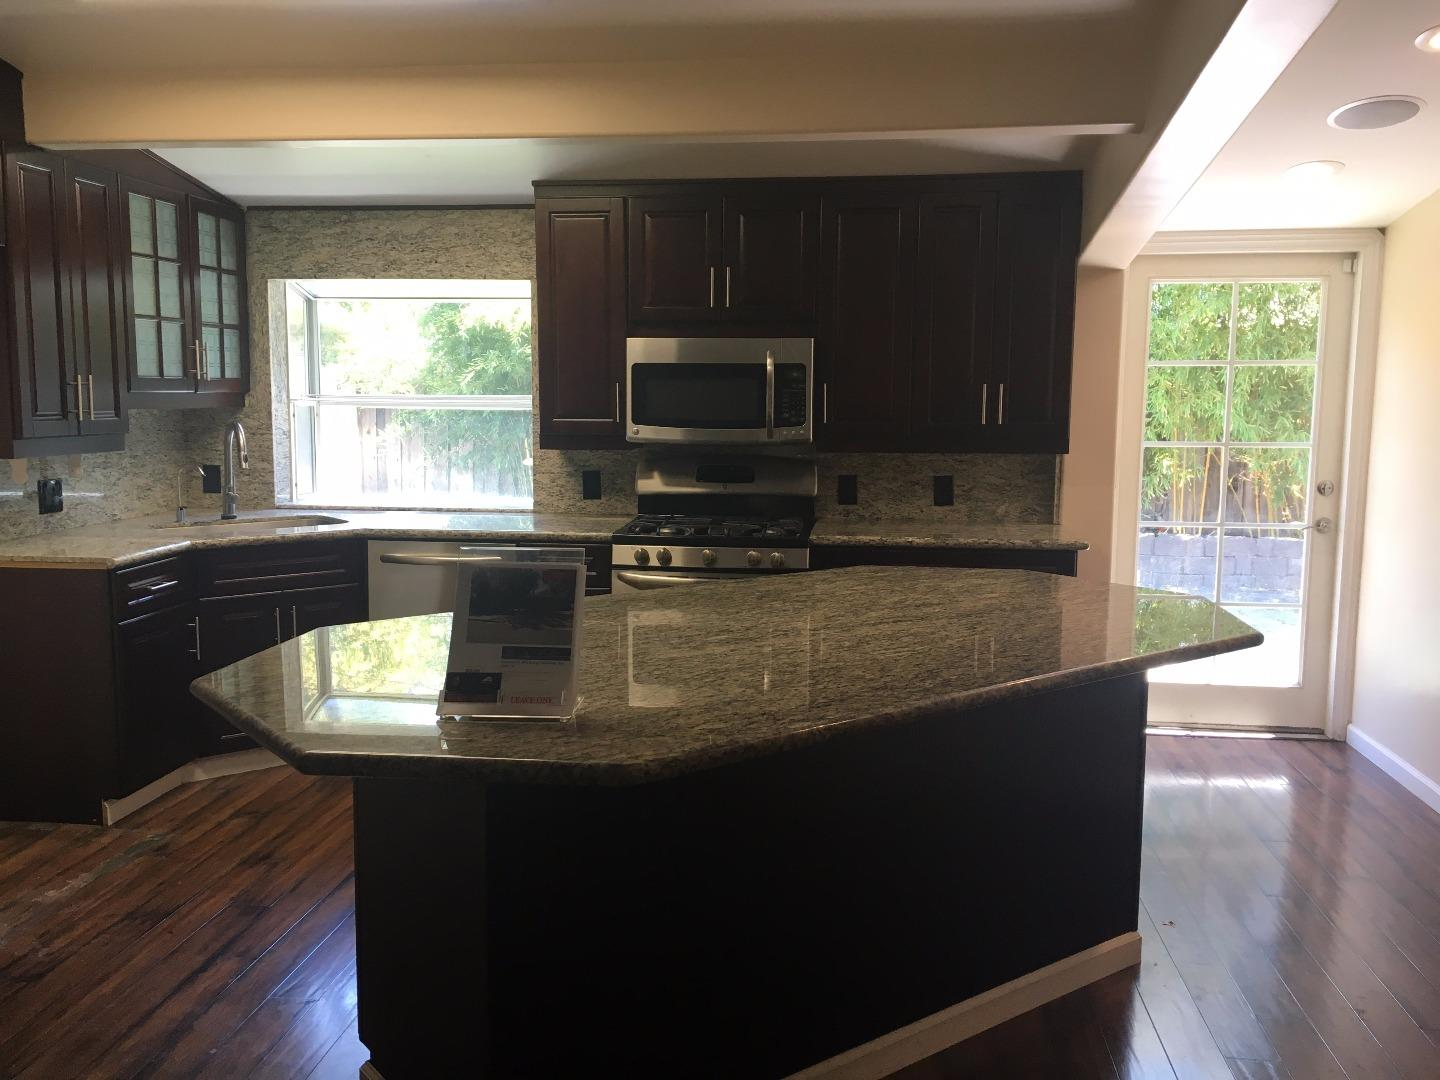 Additional photo for property listing at 2364 Sunny Vista Drive  San Jose, California 95128 United States